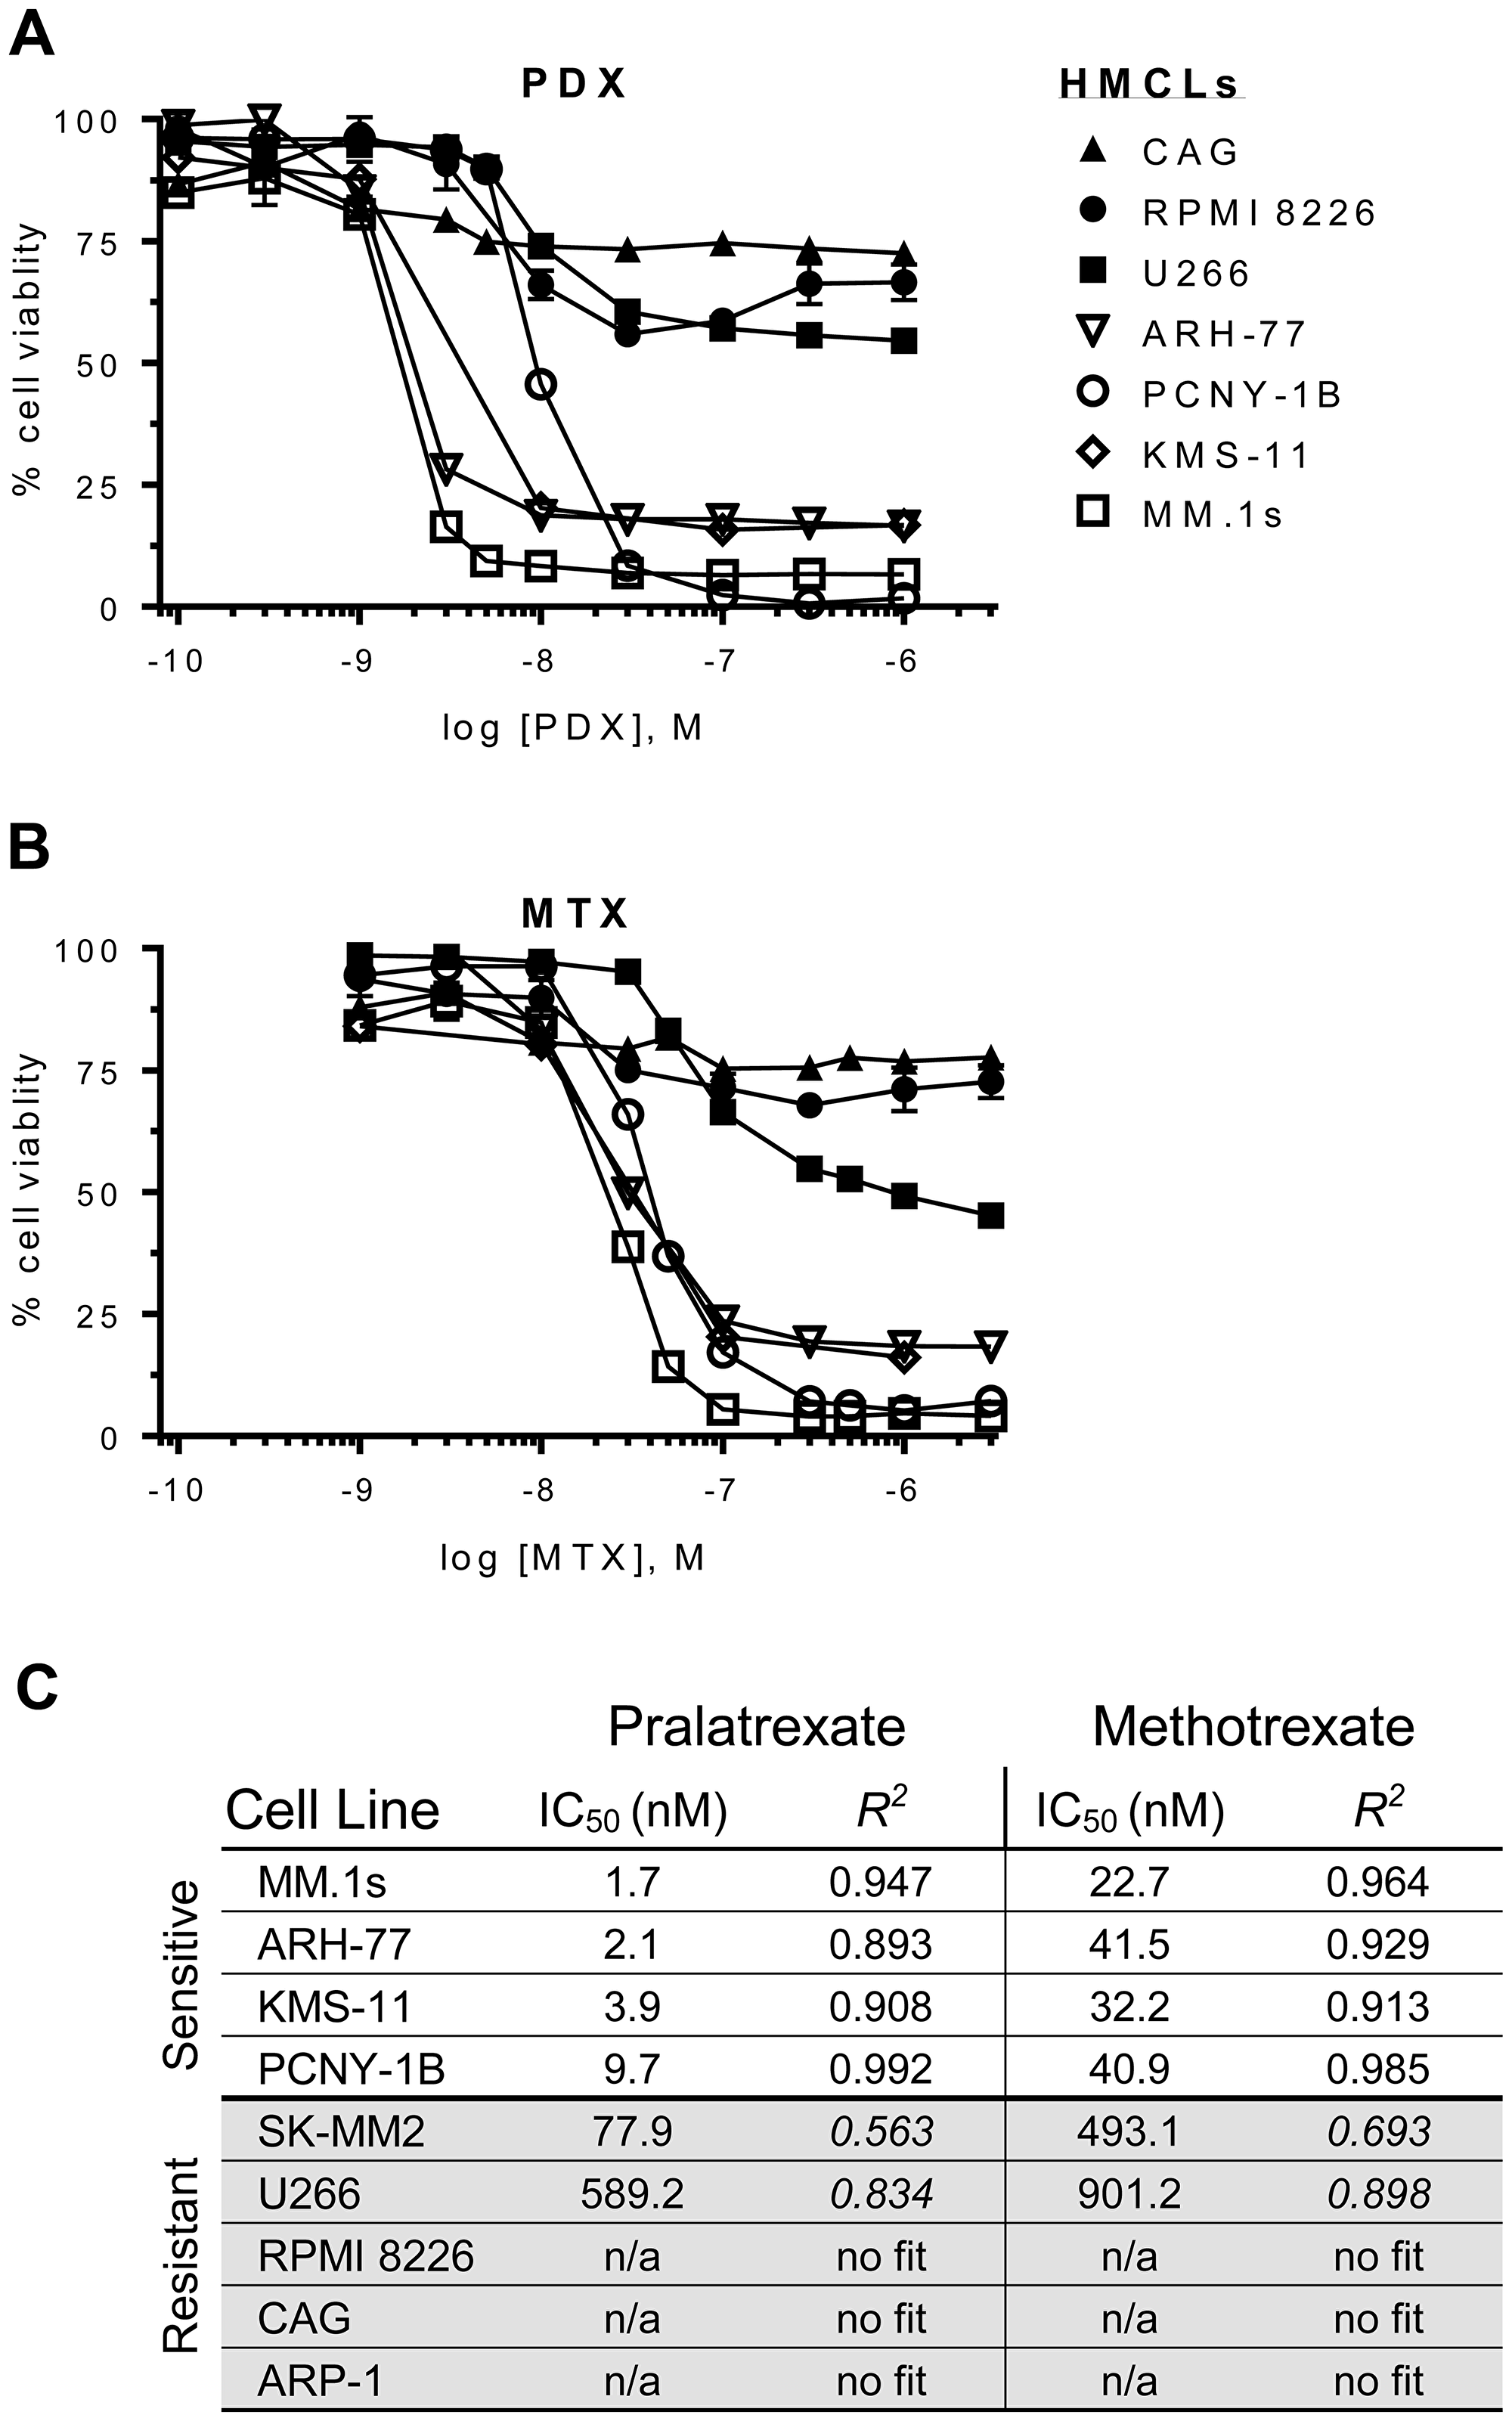 Dose-response curves for antifolates in a panel of HMCLs.